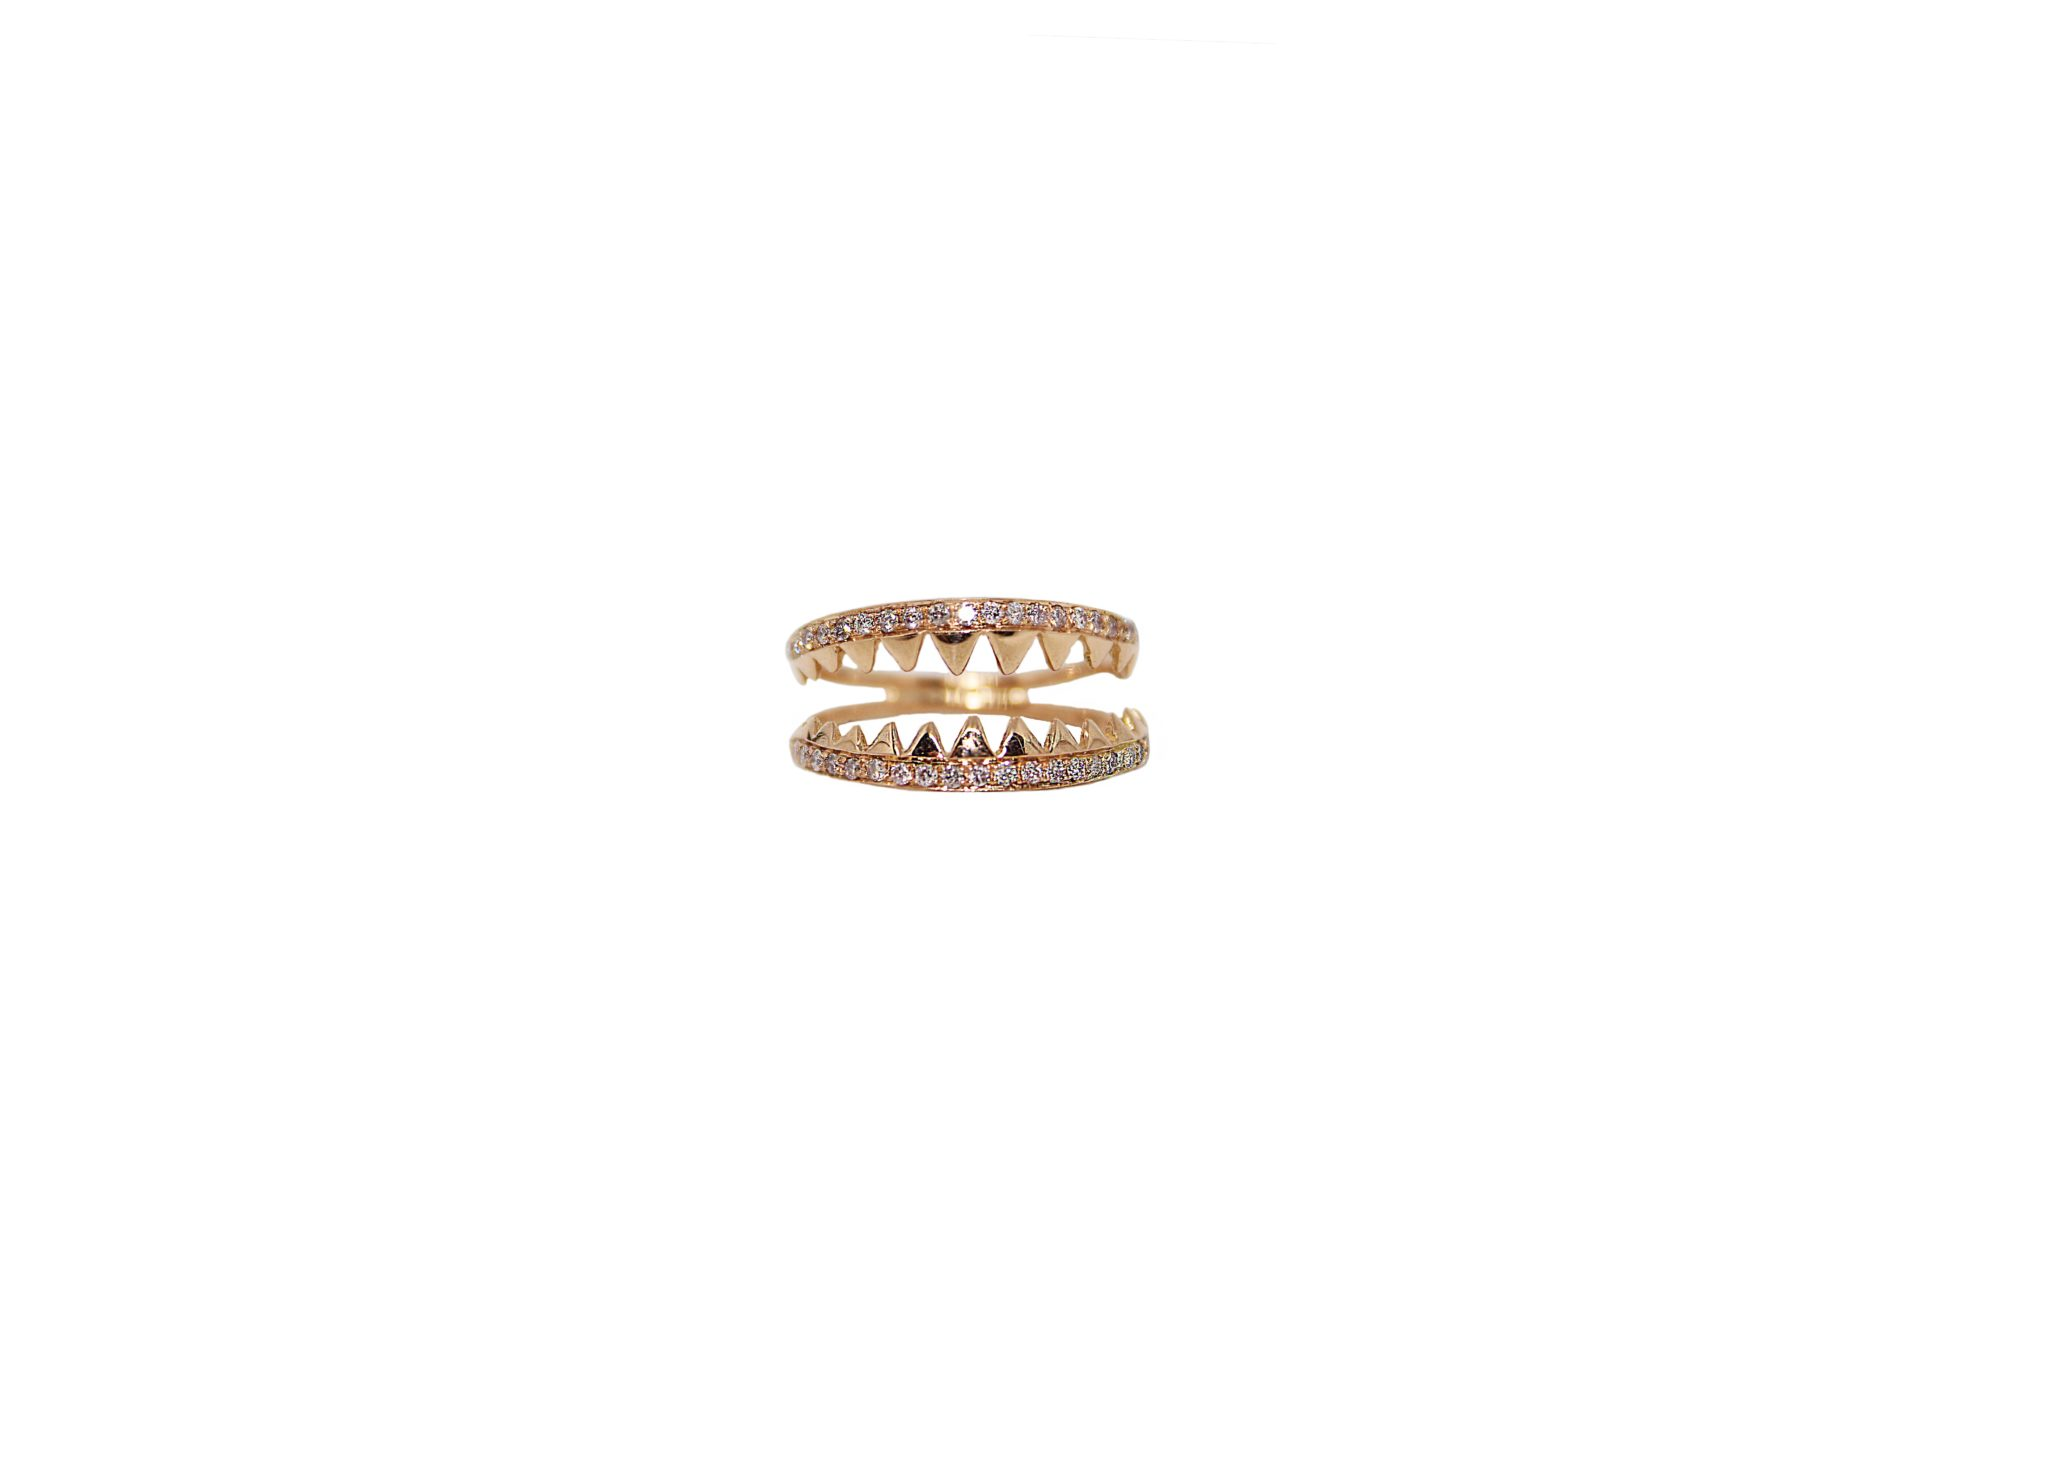 Shark jaws pink gold ring with pavé diamonds